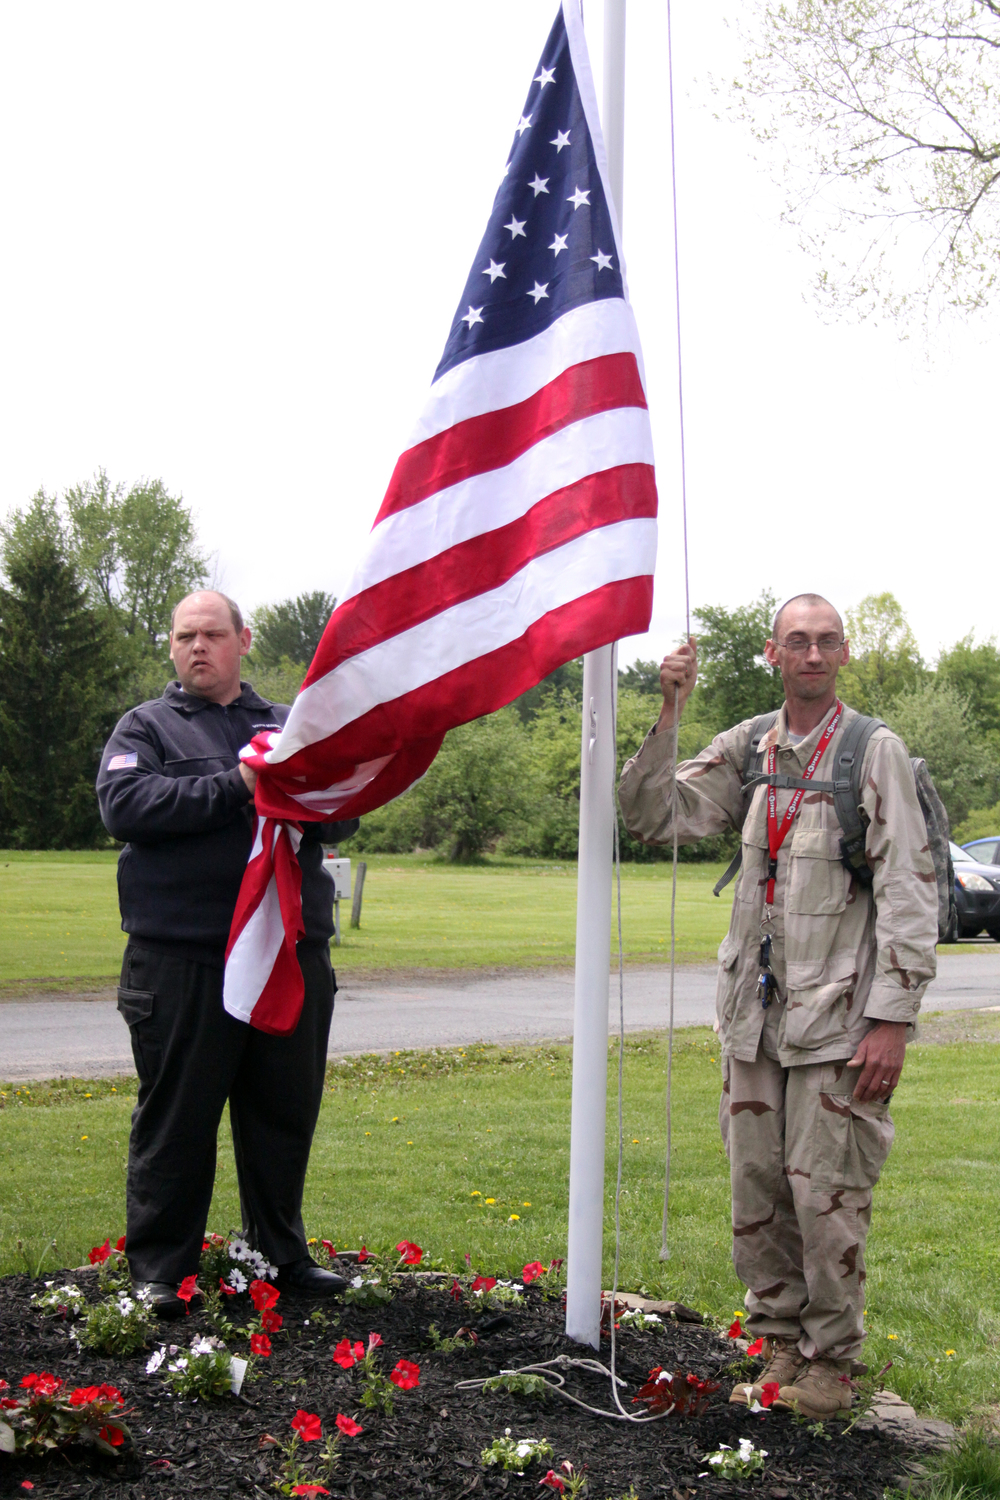 Joe Looman and Patrick Foote prepare to raise the flag.